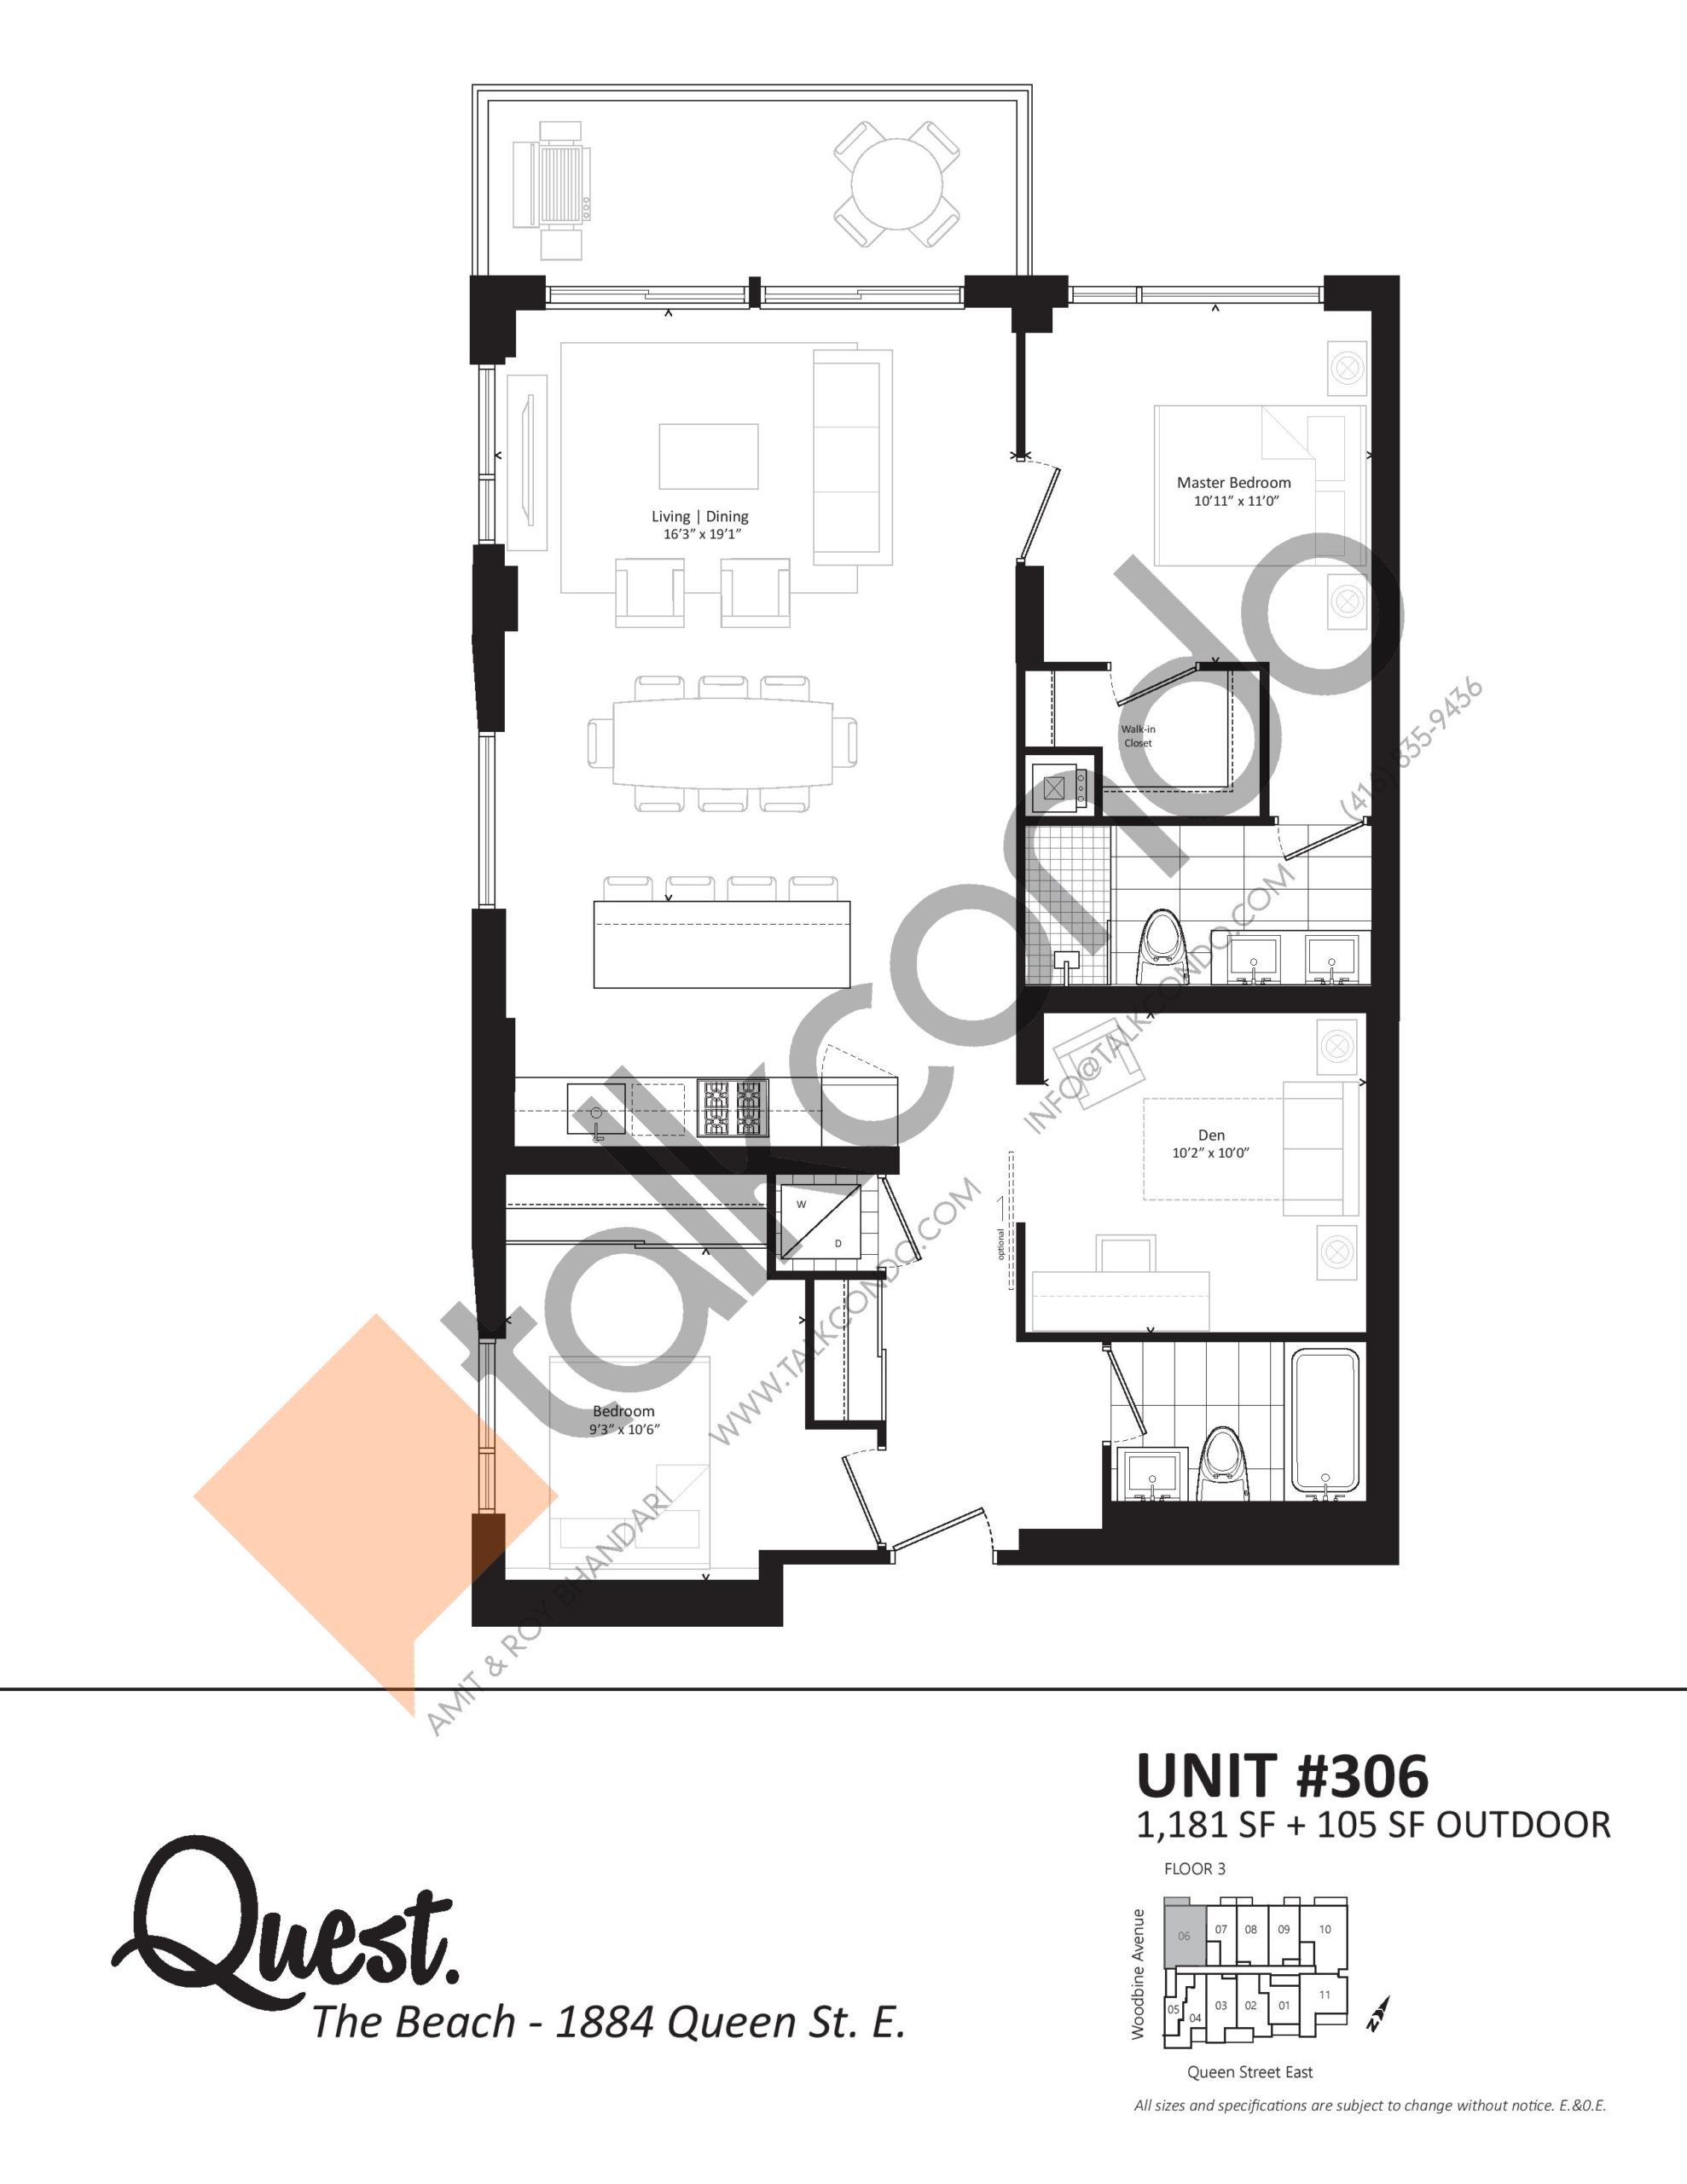 Unit 306 Floor Plan at Heartwood the Beach Condos - 1181 sq.ft